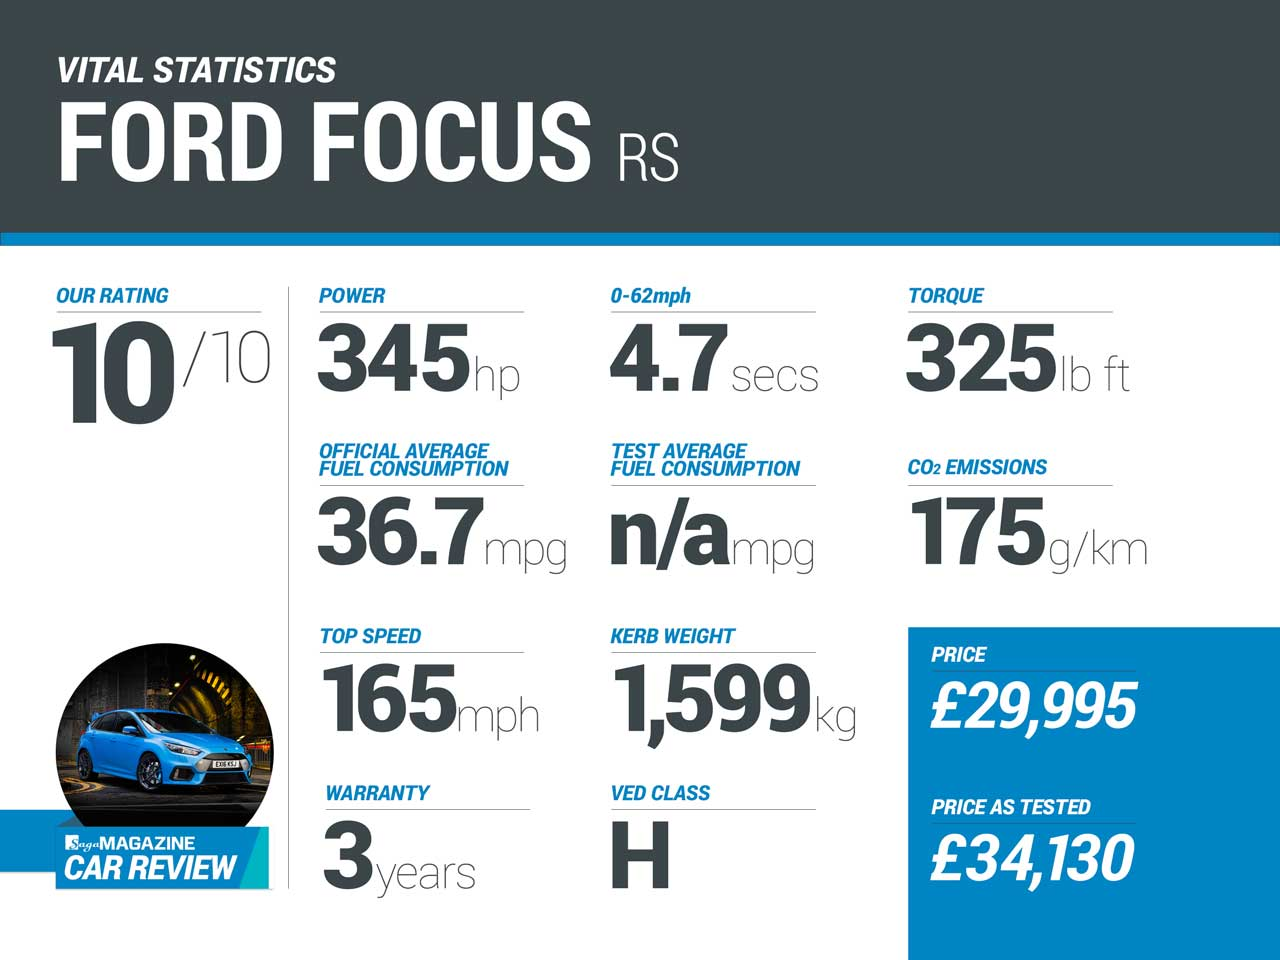 Ford Focus RS vital statistics